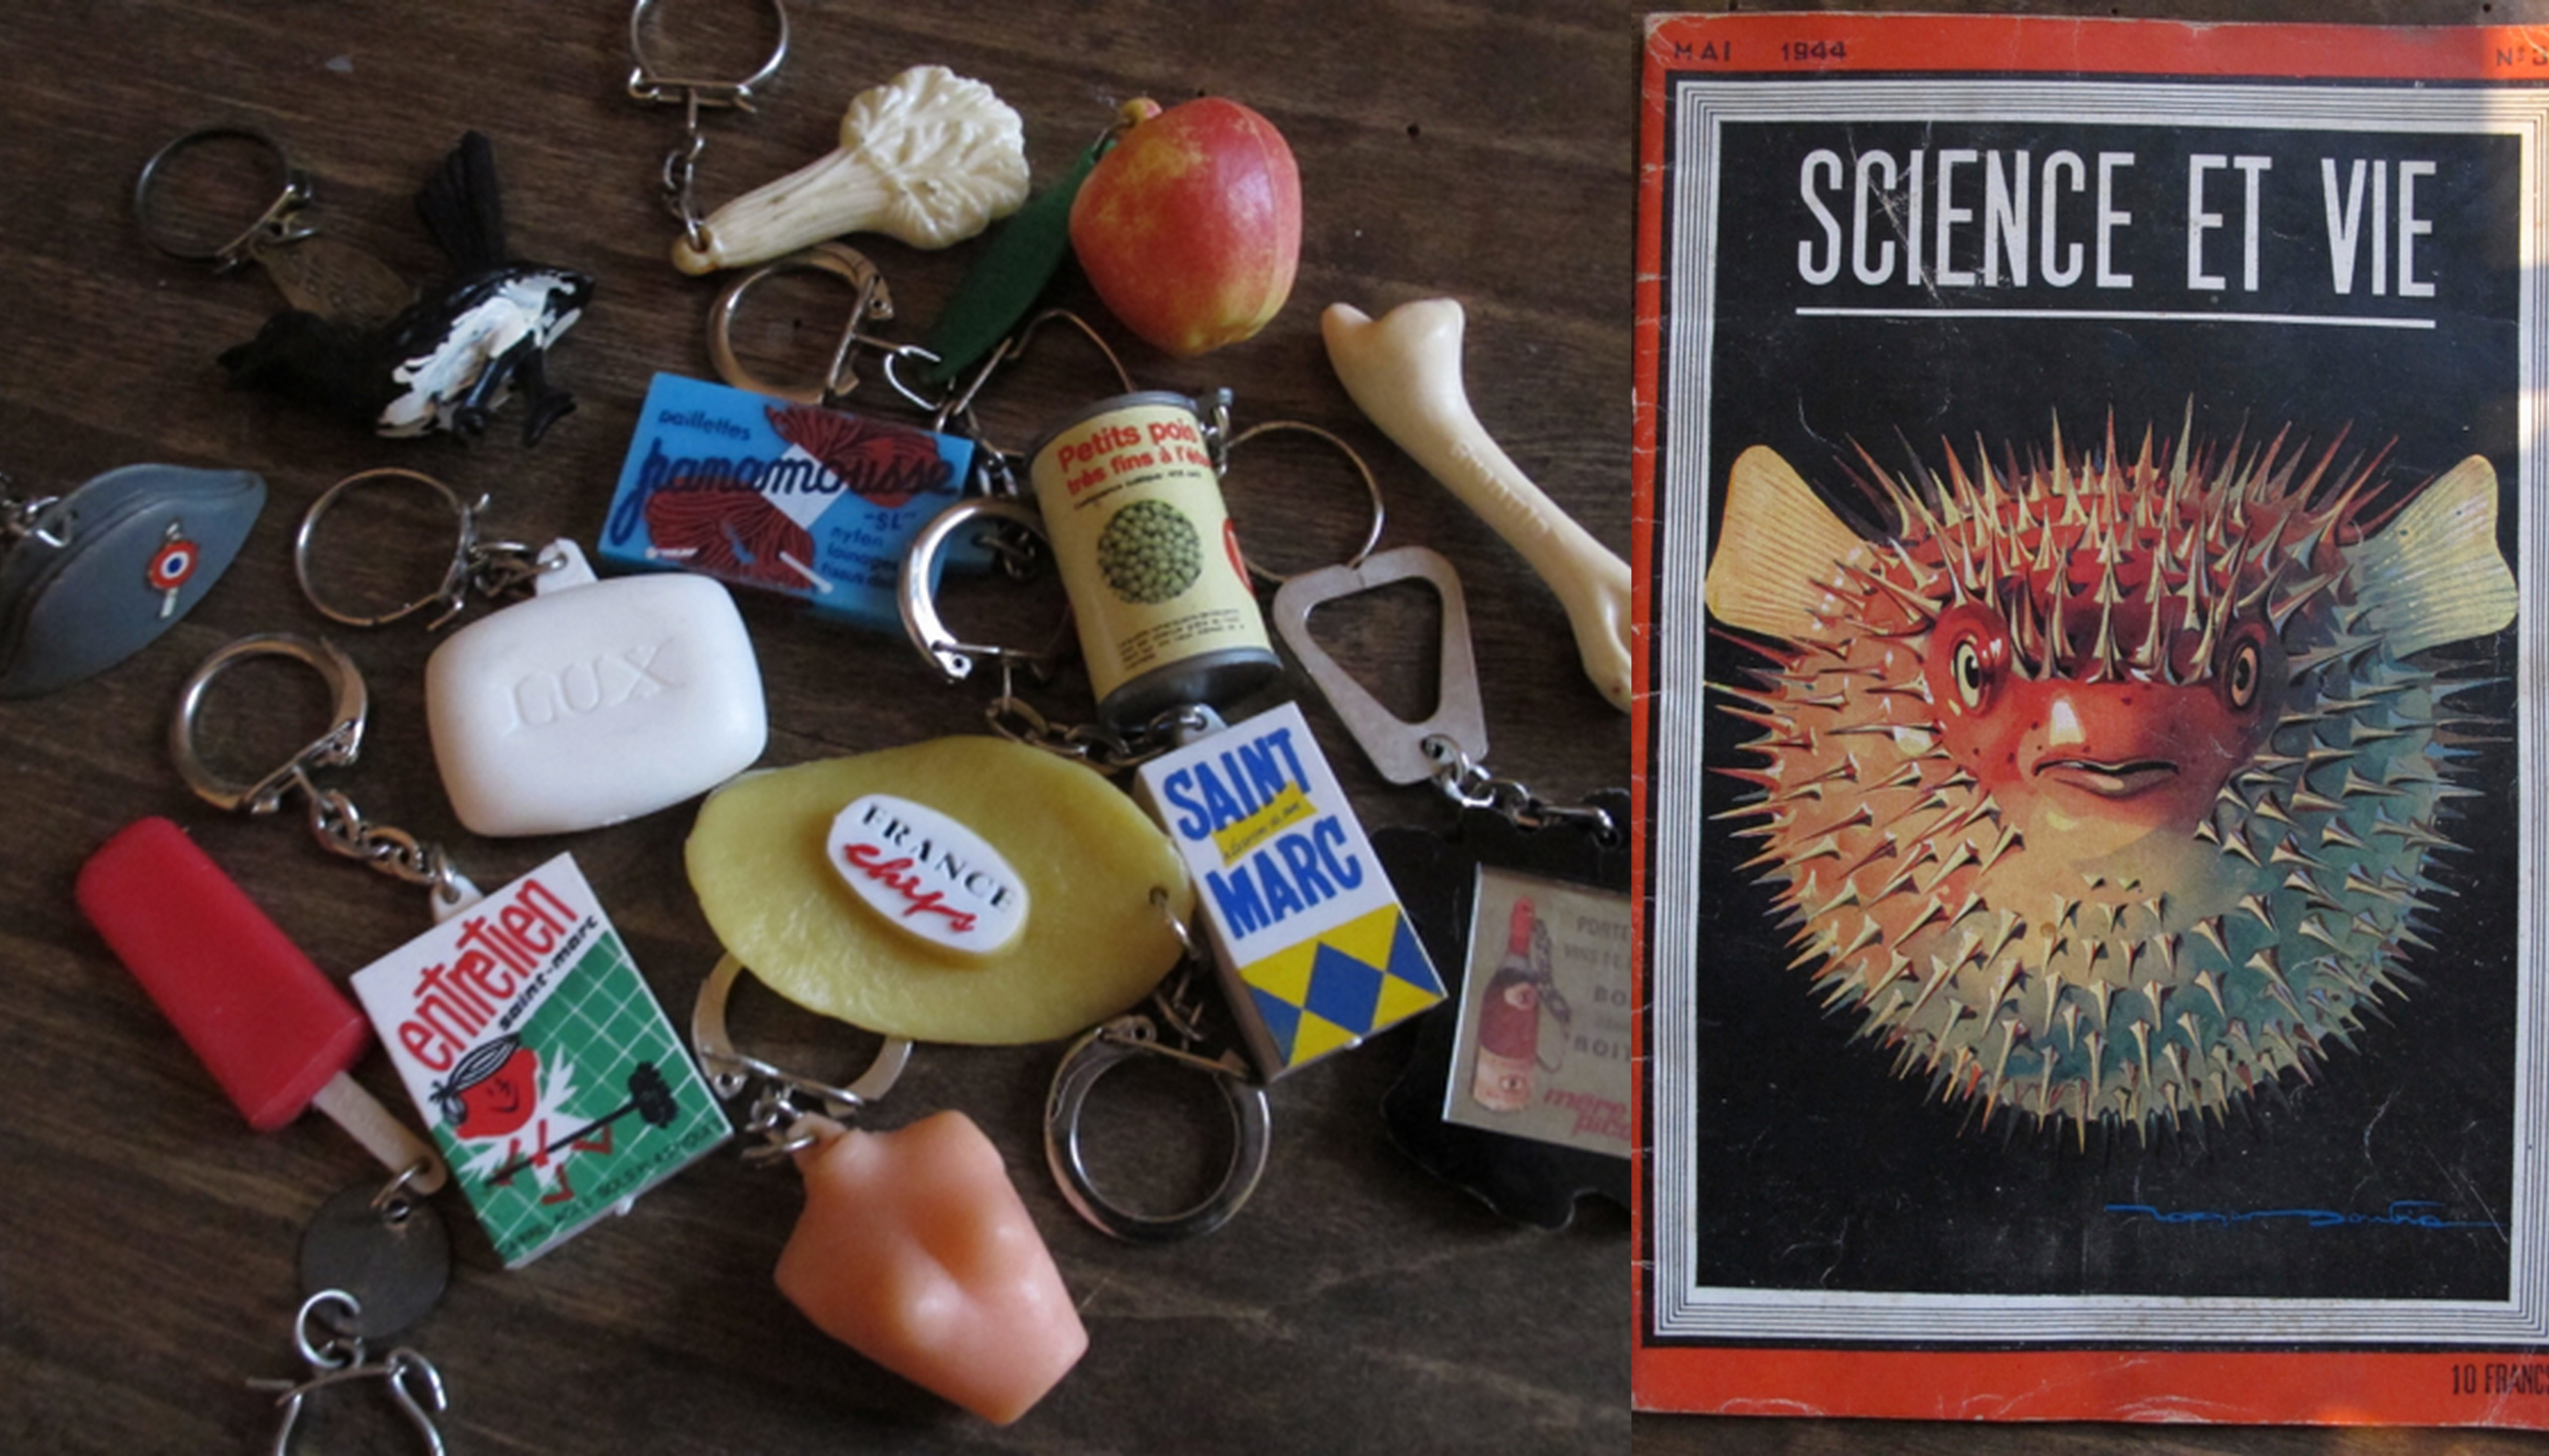 """A few things from last weekend's 'Vide-Grenier' (village garage sale):  some keyrings and an old """"Science et Vie' magazine from 1944.Ashamed to say I get obssessed with many things, advertising keyrings from the 60s is one of them!  And I've just discovered there is even a name for it - 'Copoclephliie' (!!)"""